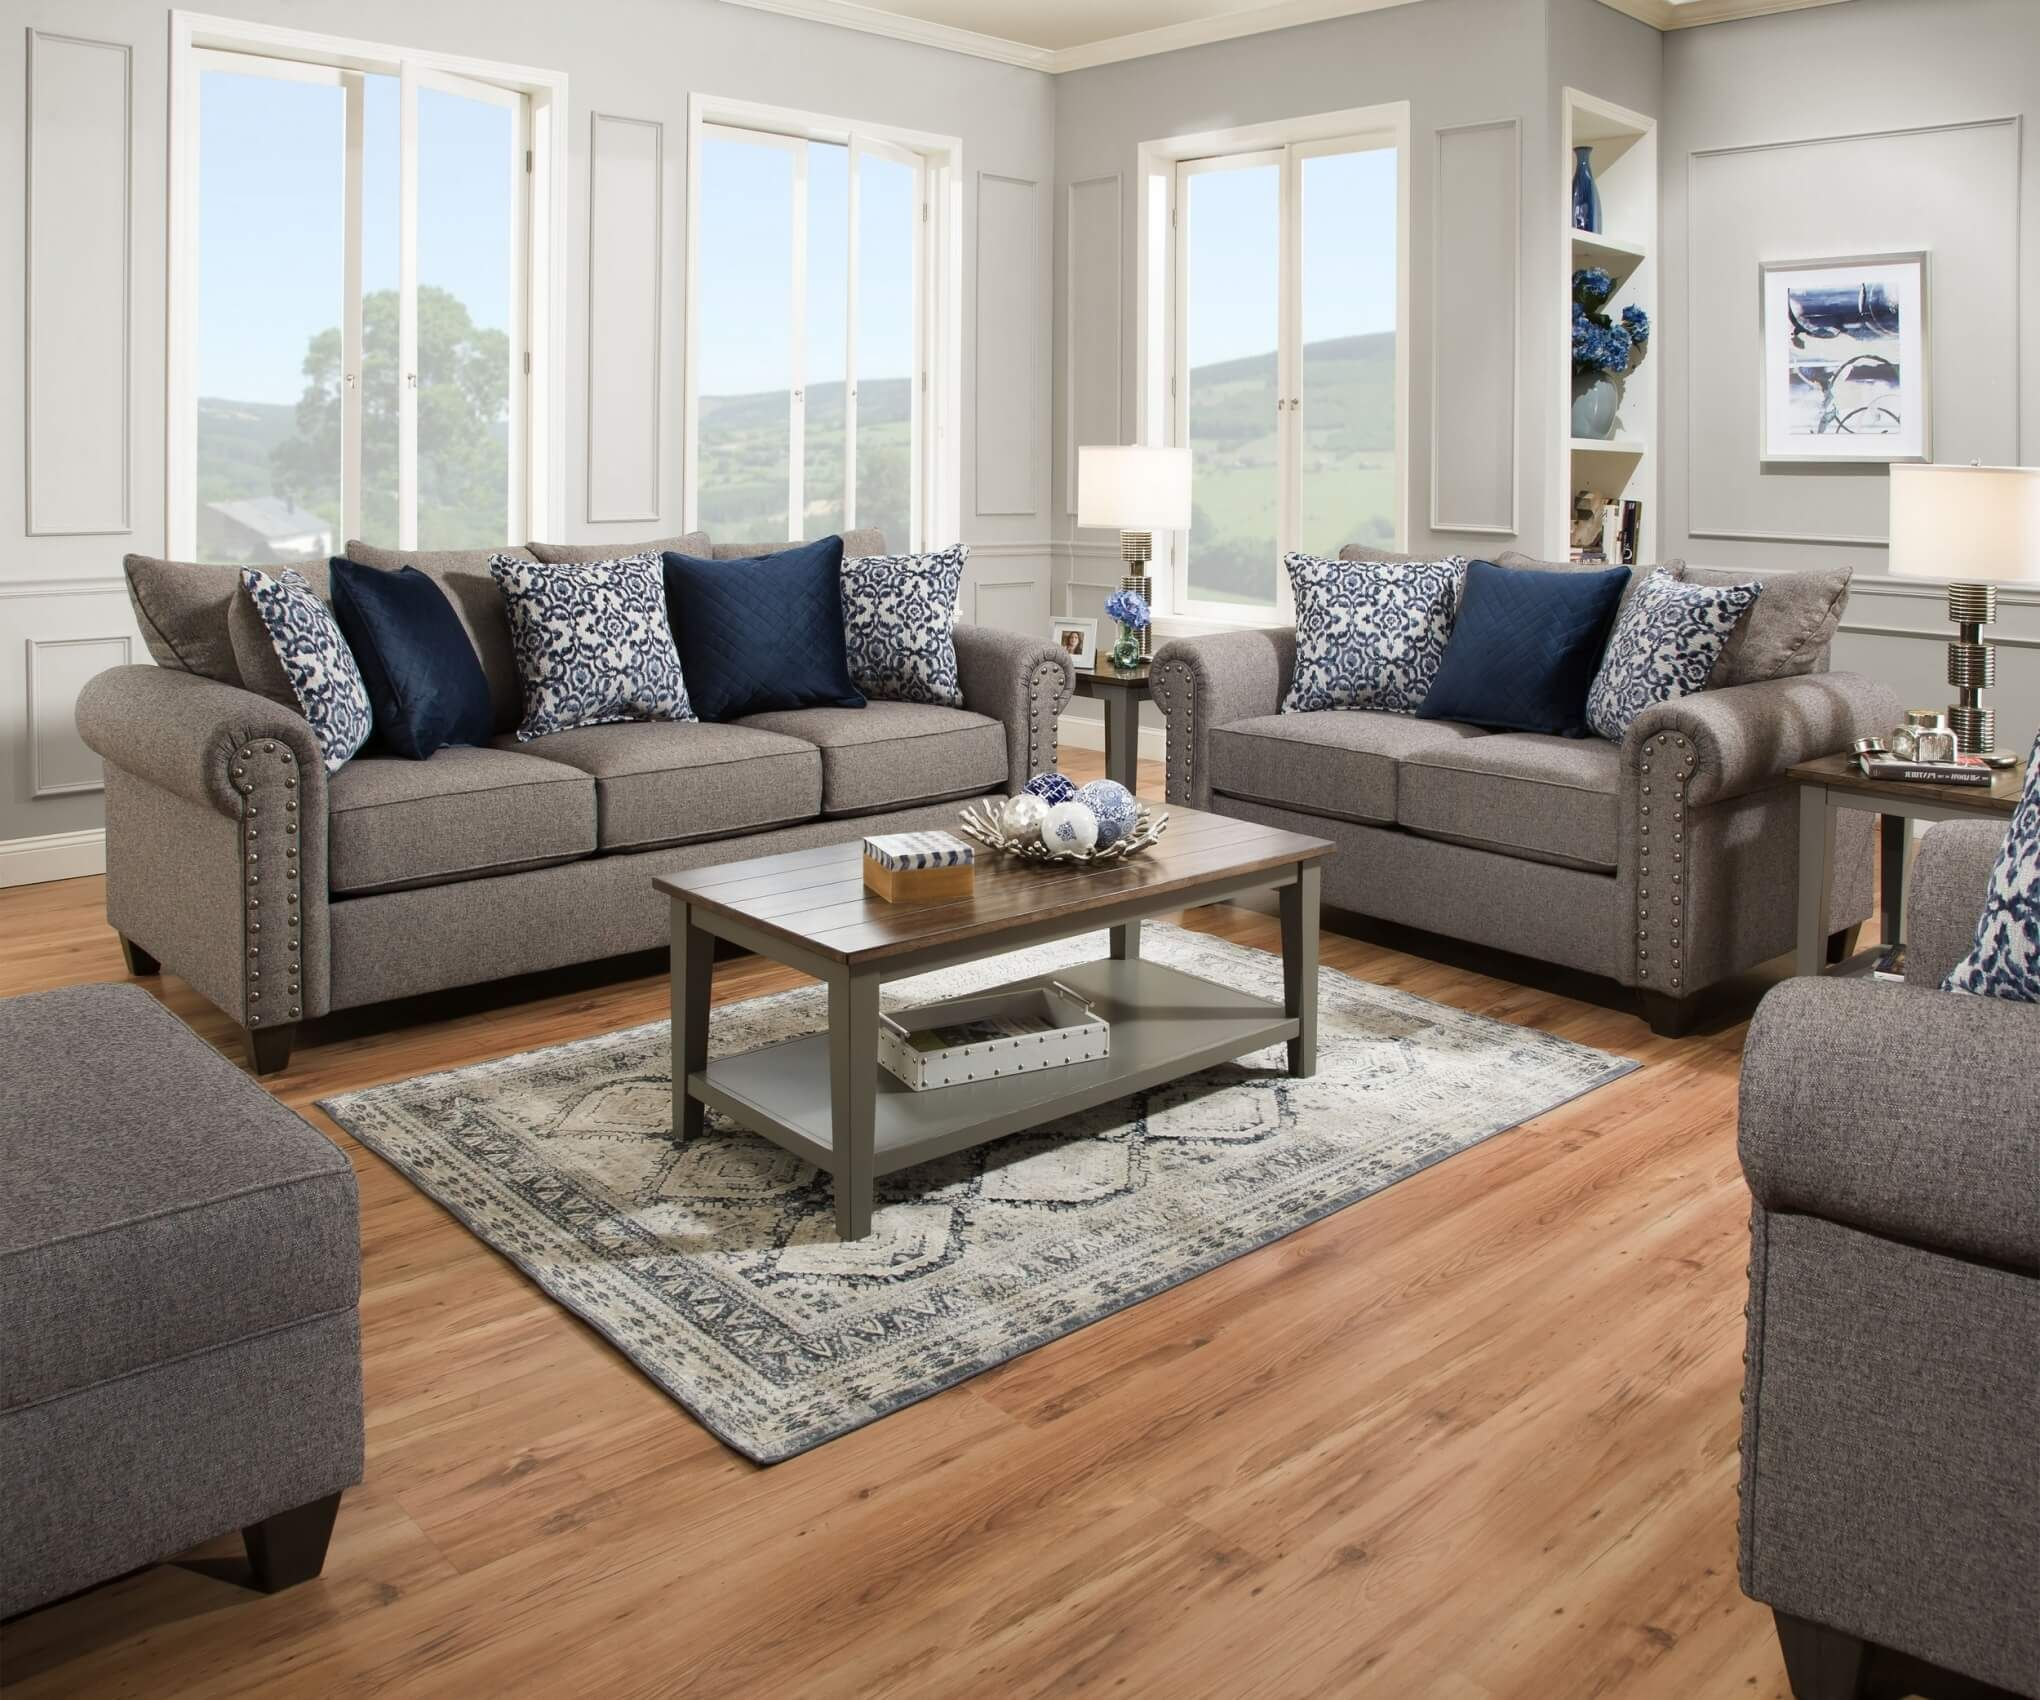 23++ Living room couch sets cheap ideas